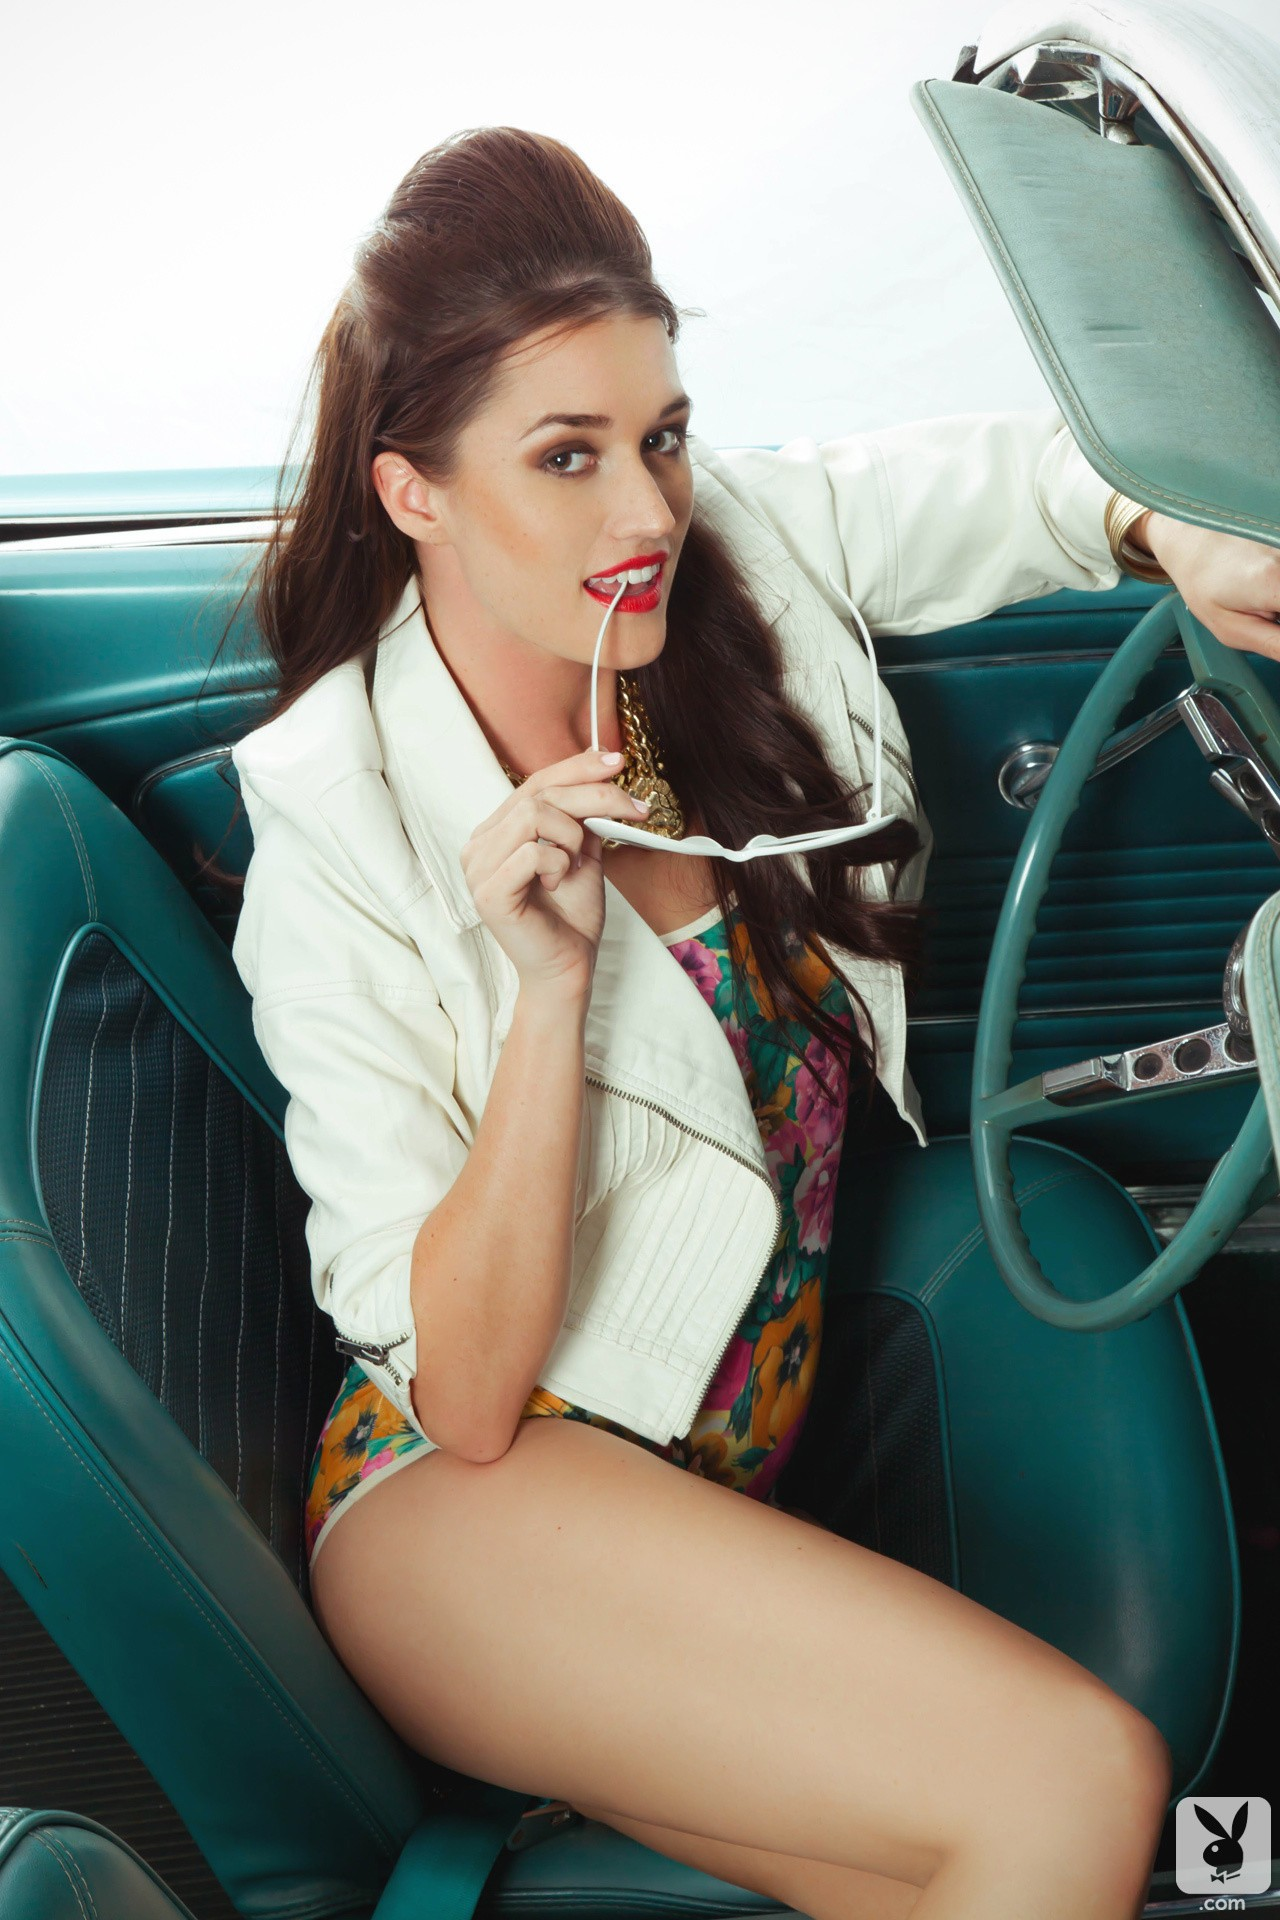 Jade Roper Does Retro Playboy Photo Shoot In Classic